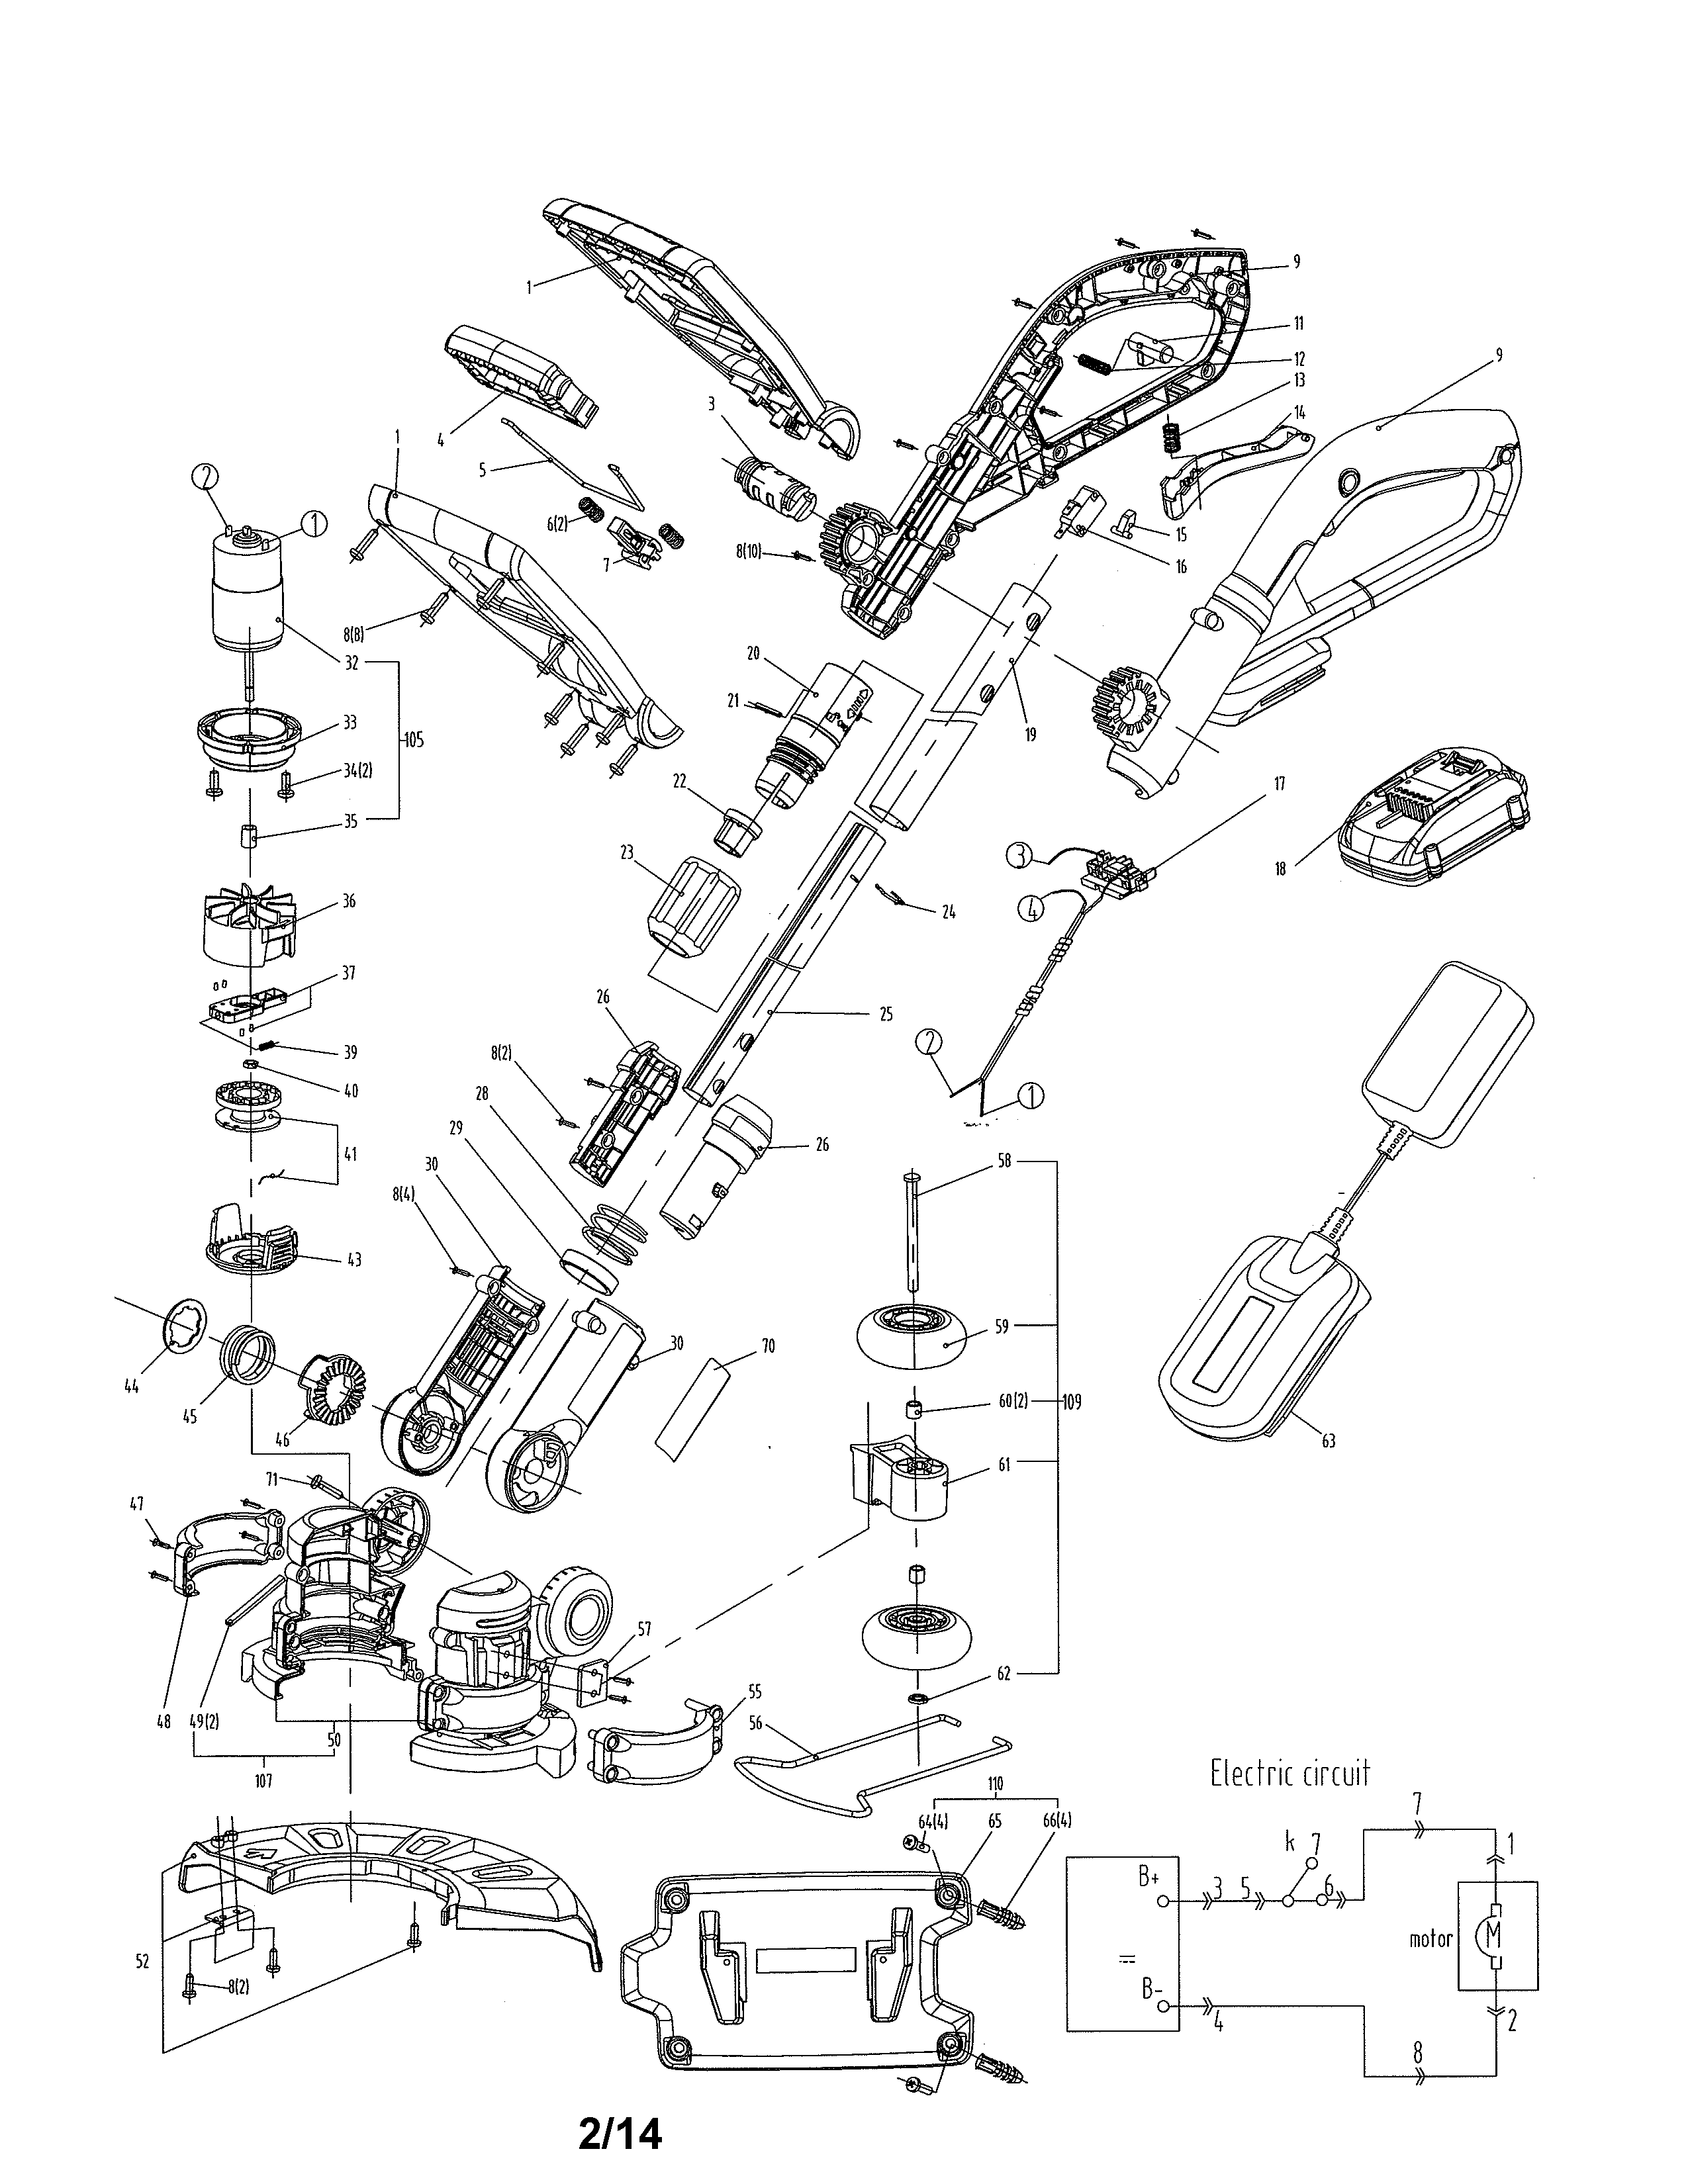 furthermore stihl fs 90 parts diagram on hedge trimmer motor diagram